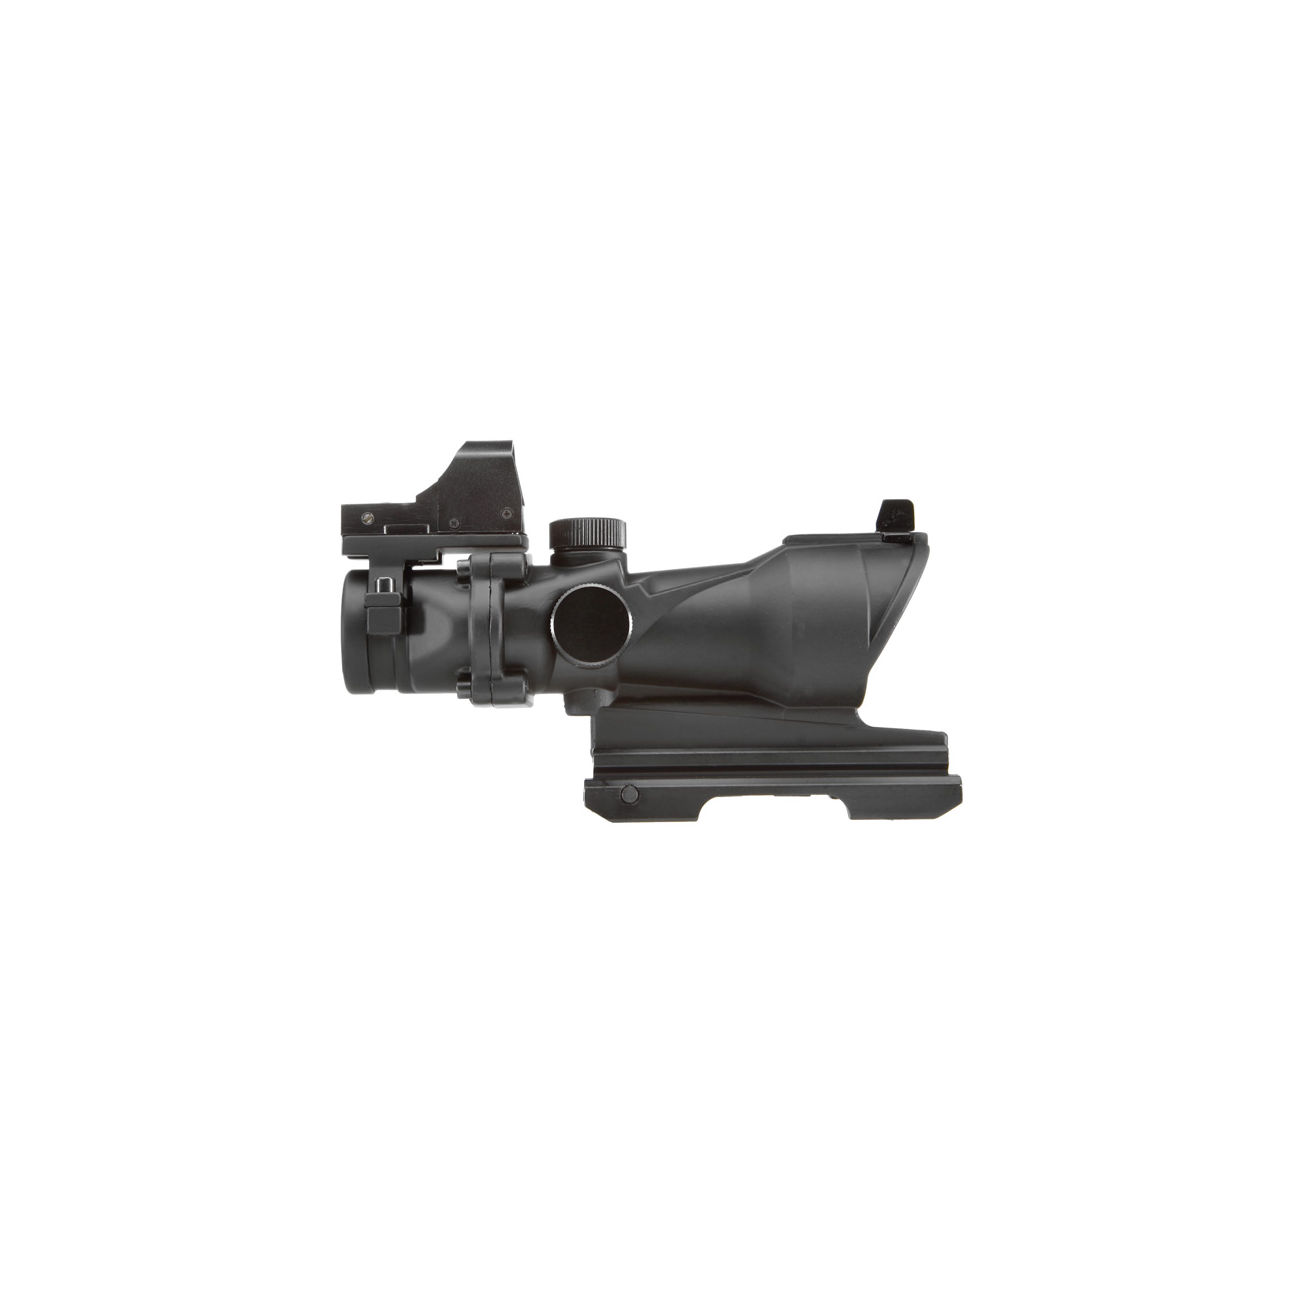 Aim-O TA01 Style Scope 4x32 QD-Mount mit Mini RedDot Visier schwarz 5316-BK 2